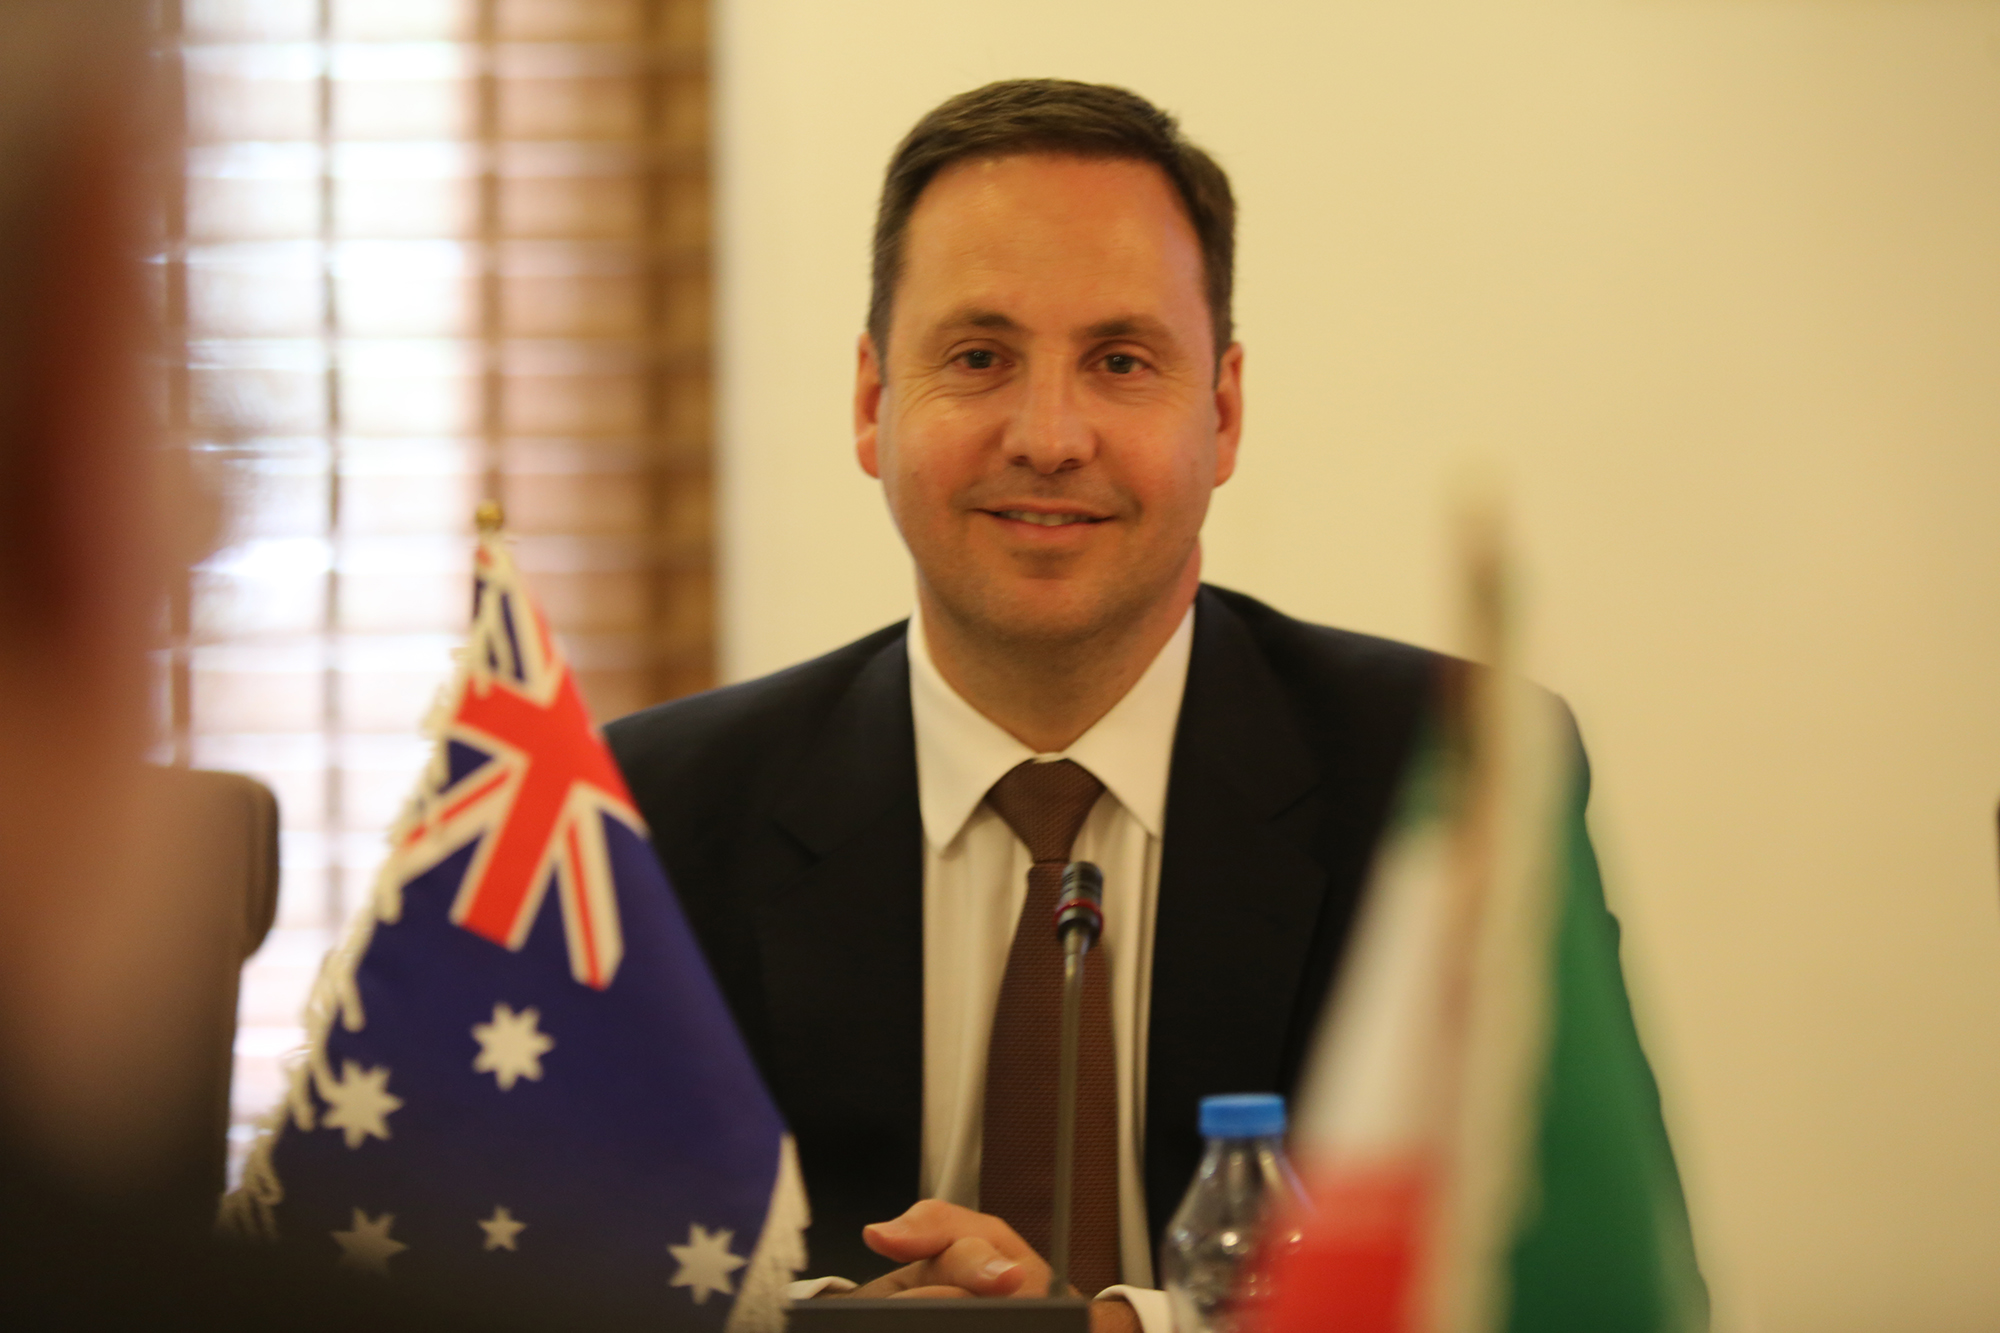 Australia's Minister for Trade, Tourism and Investment to attend APEC Ministerial Meeting